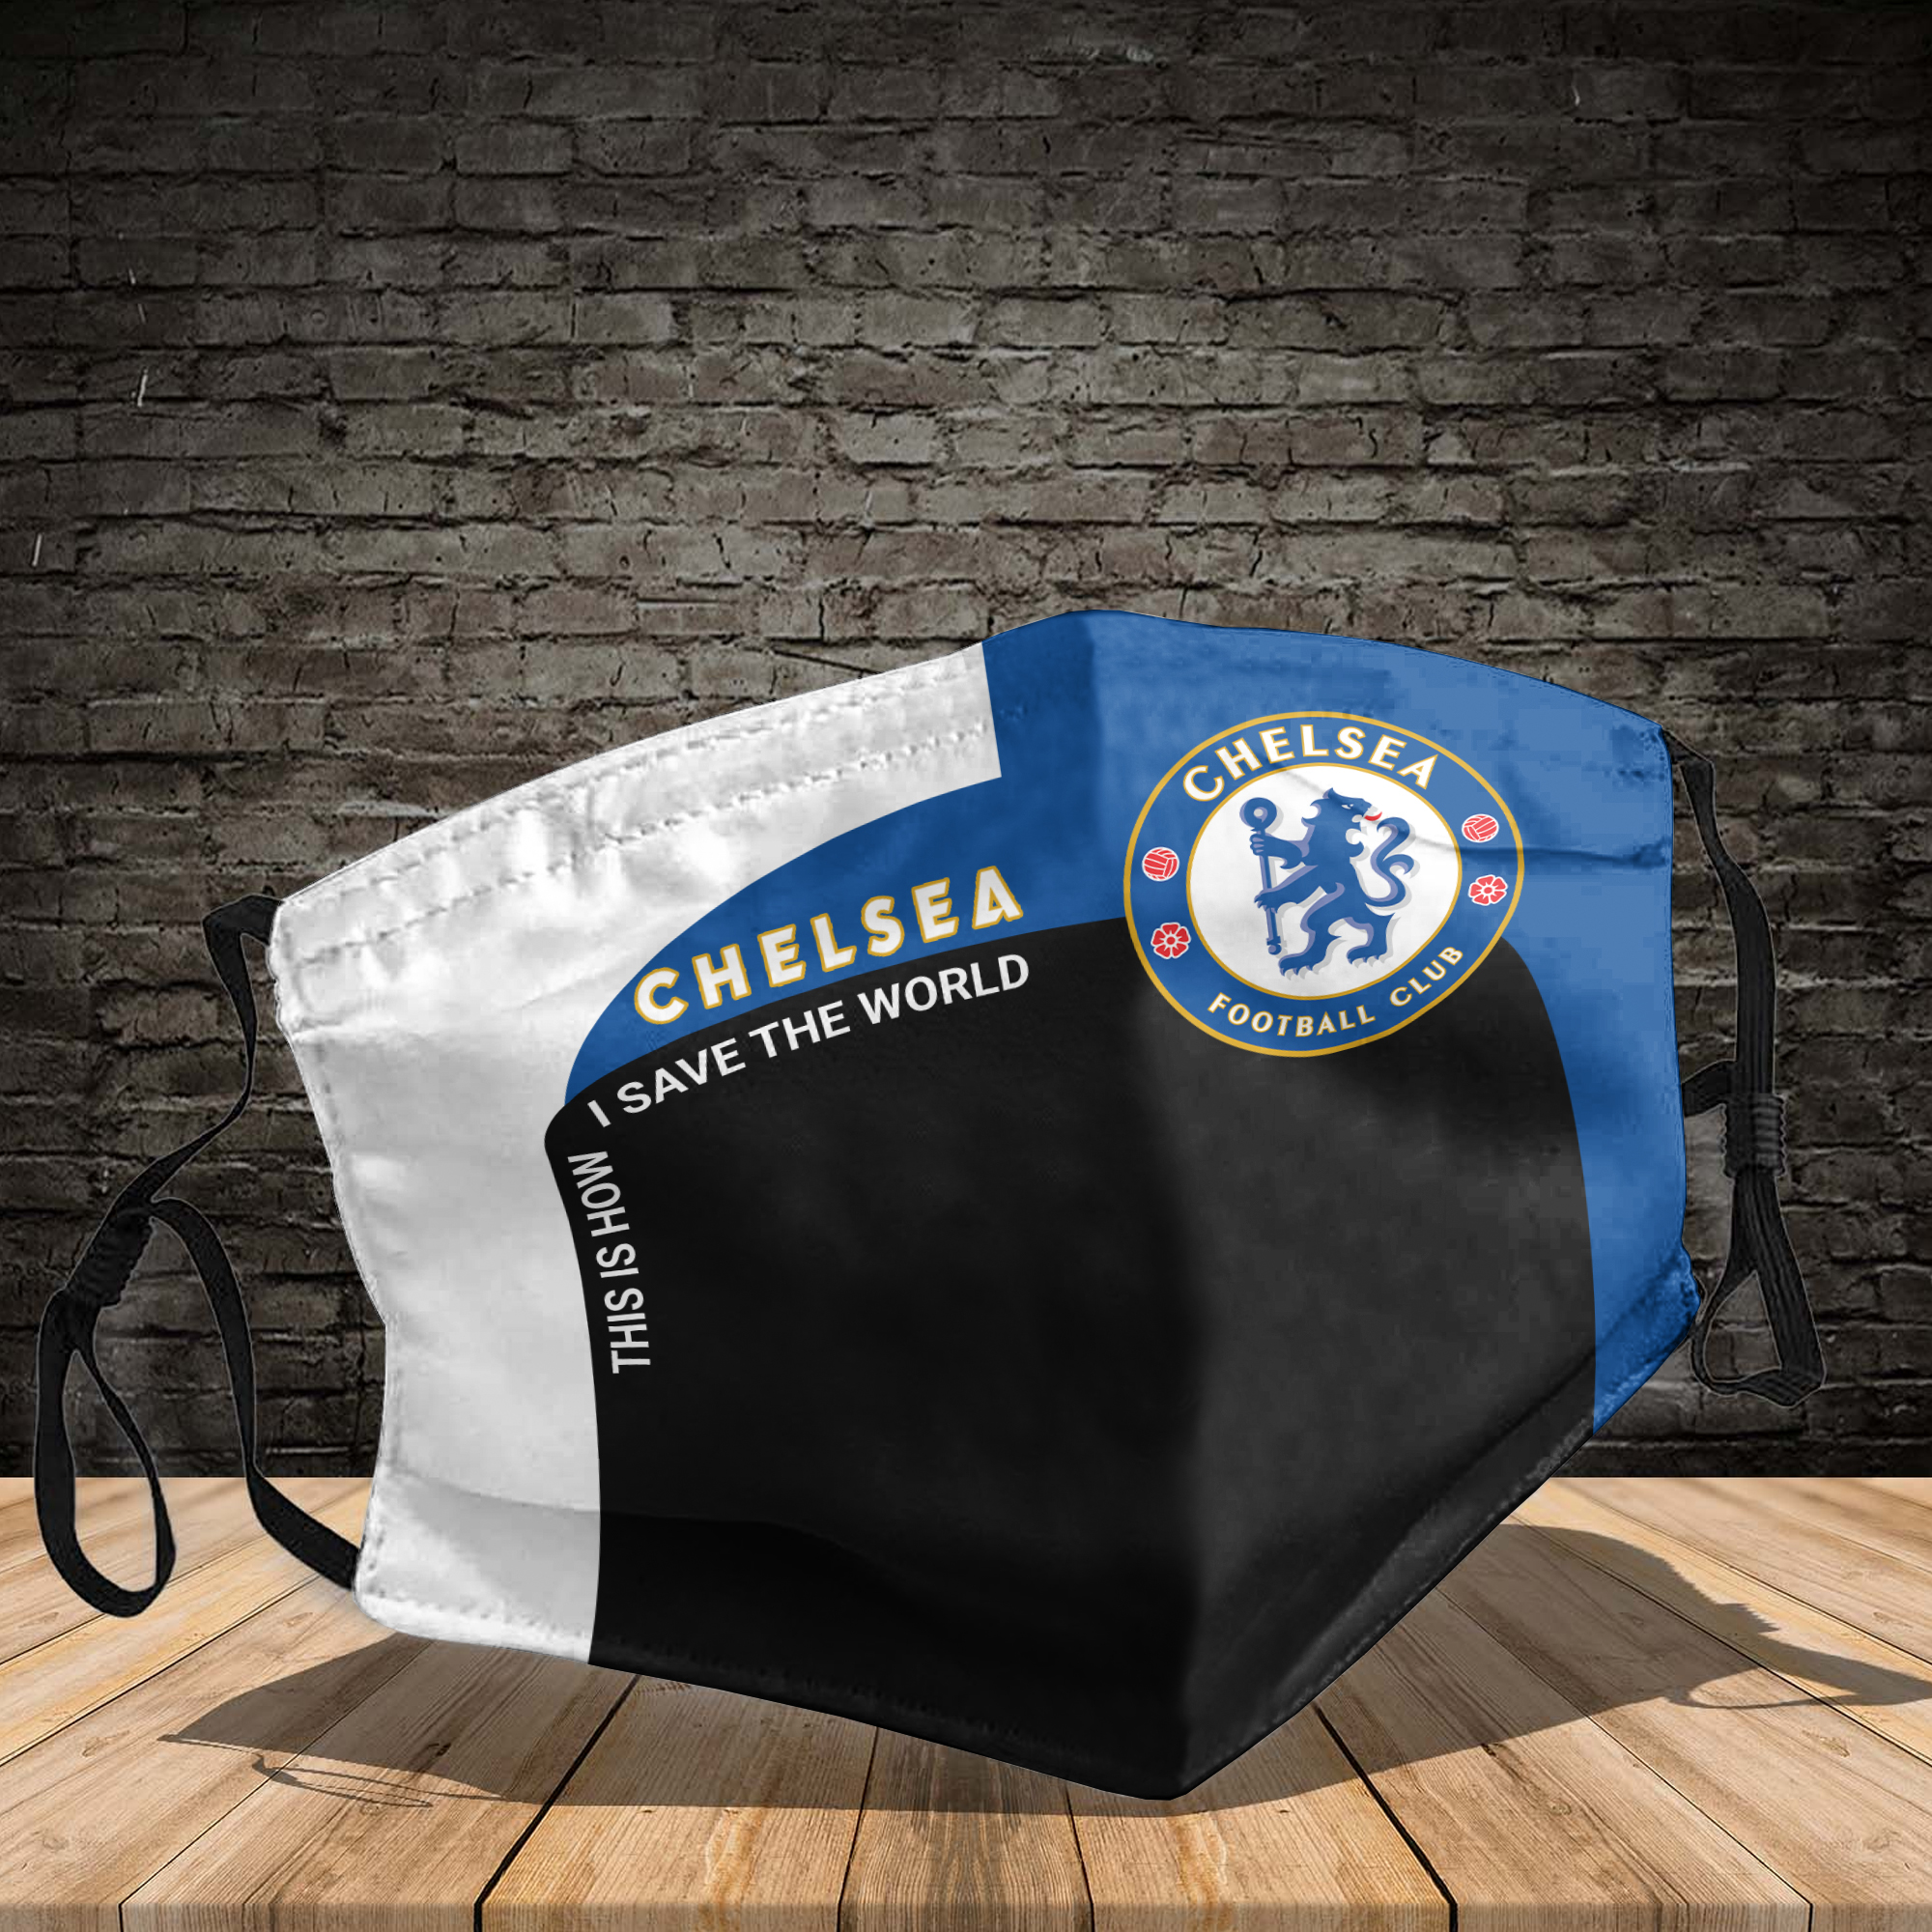 Chelsea football club this is how I save the world face mask2